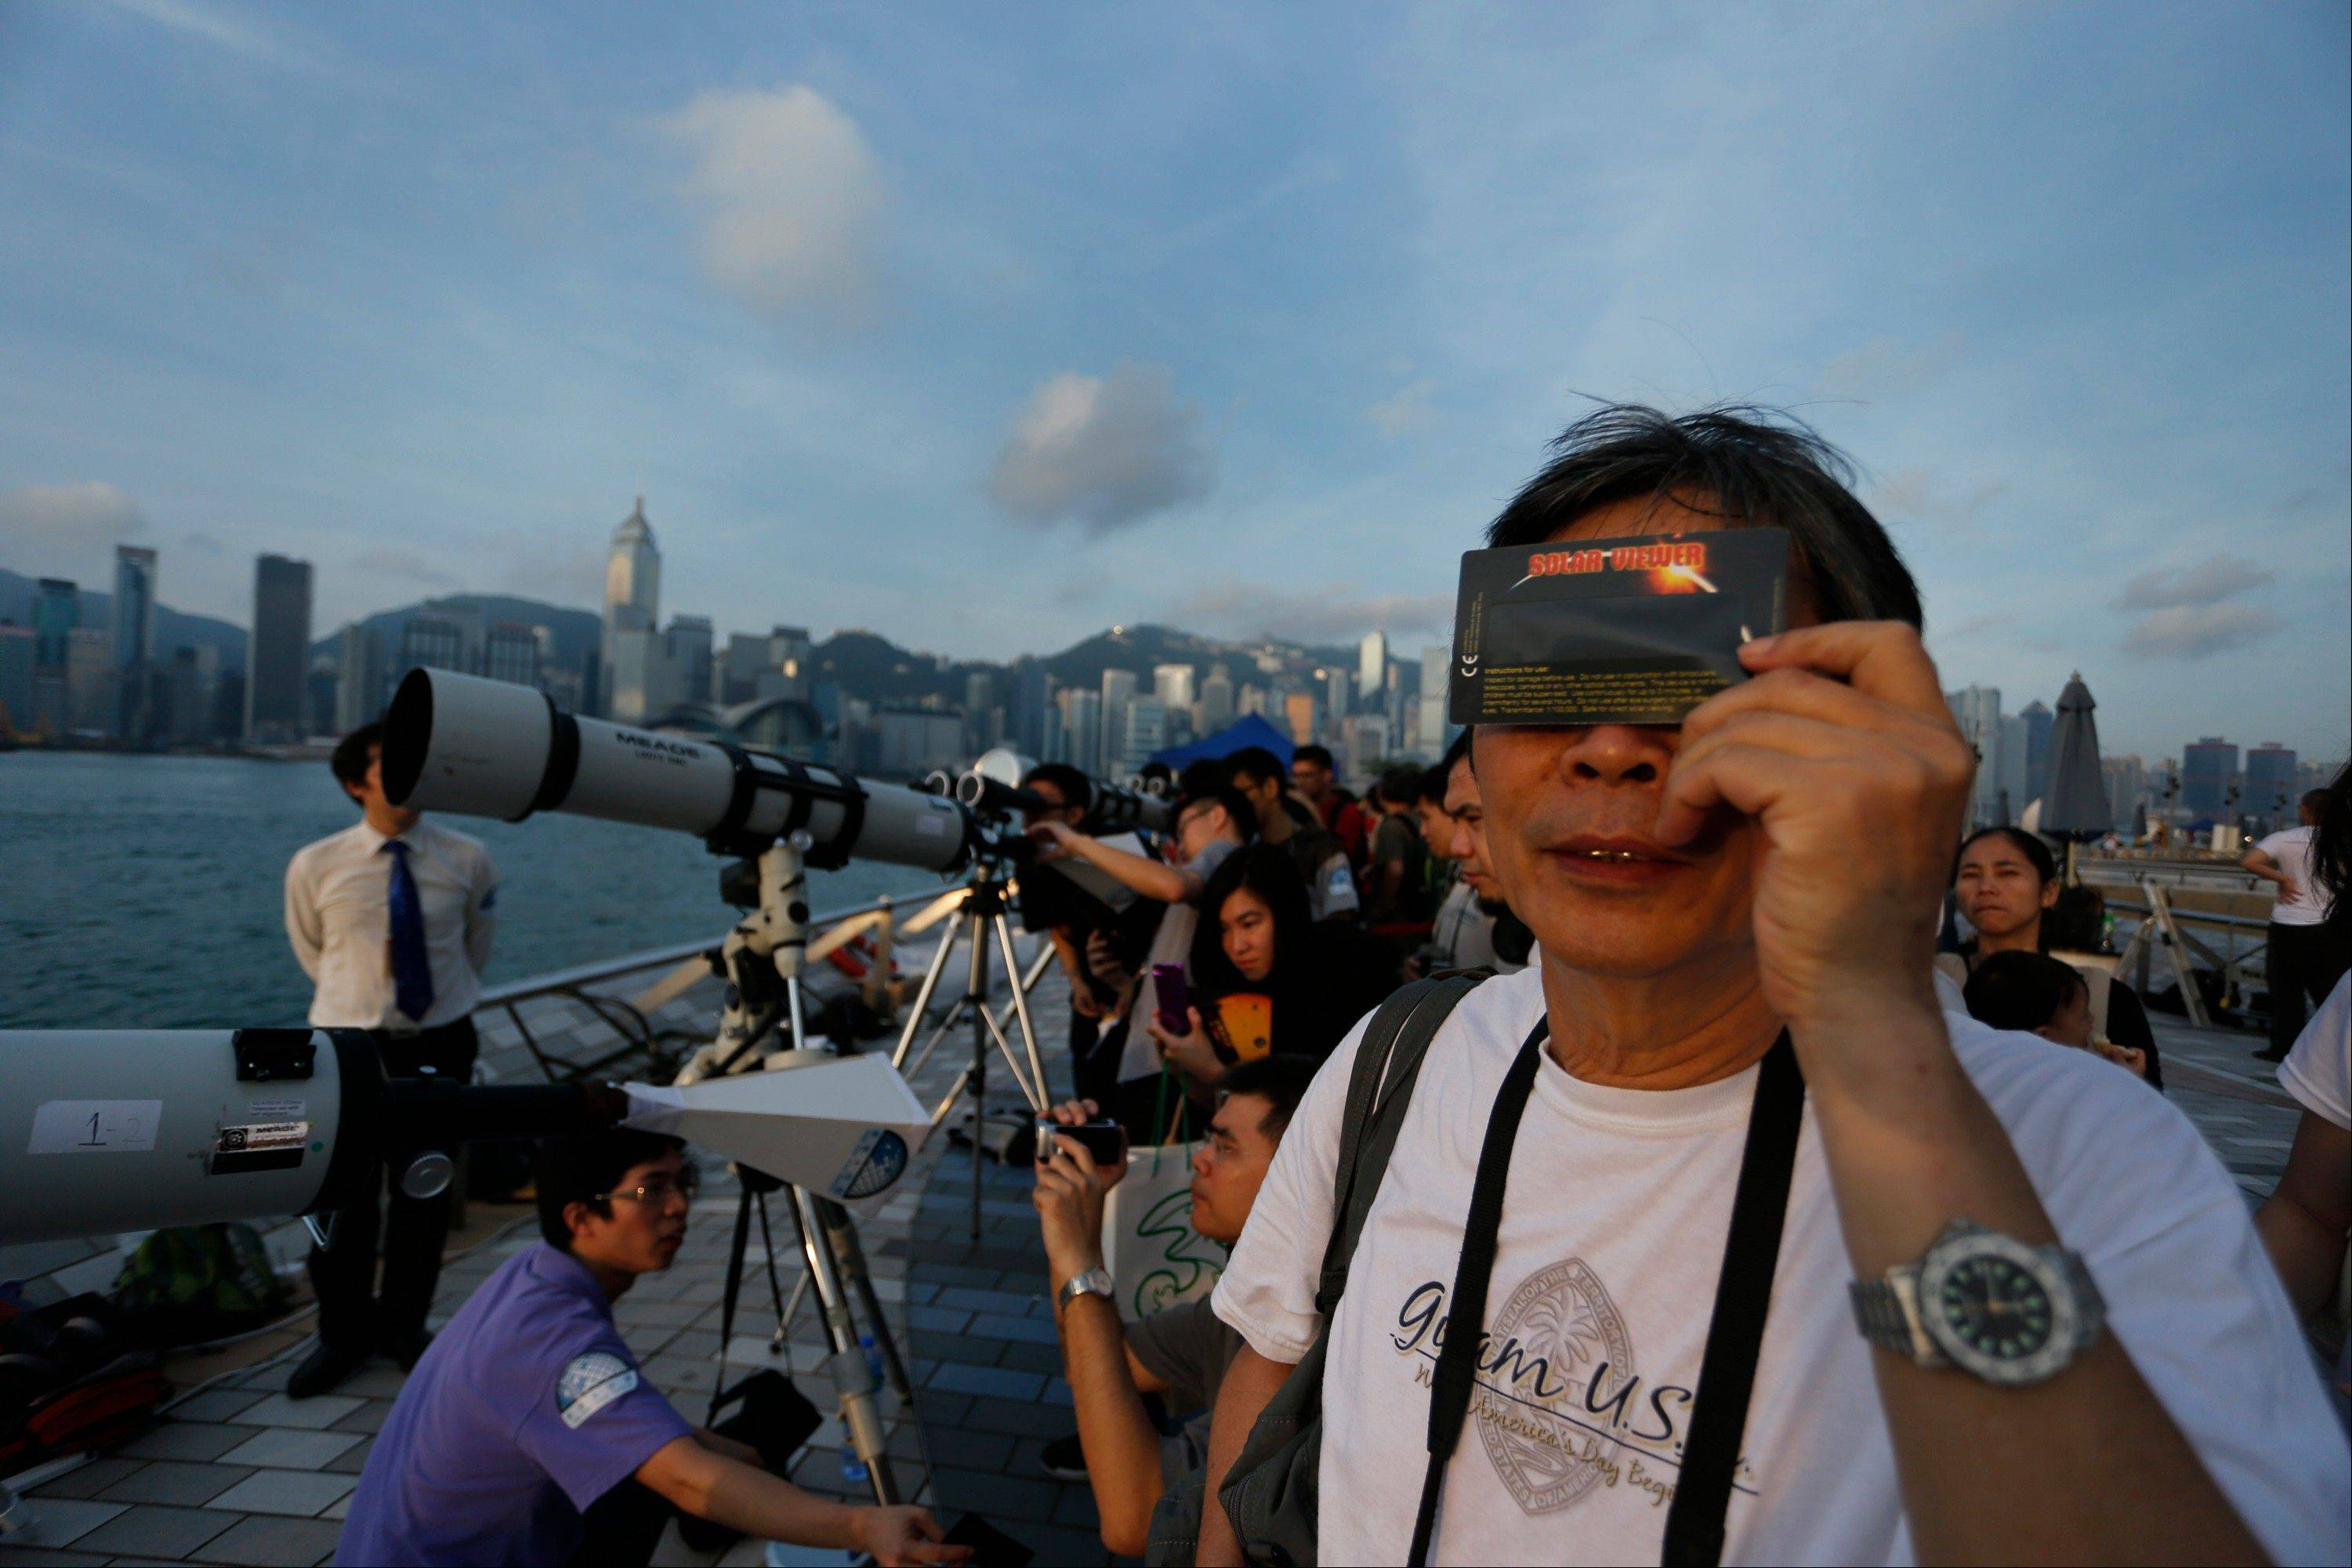 Hong Kong stargazers use telescopes and special sunglasses to observe the transit of Venus along the Victoria Habour in Hong Kong Wednesday, June 6, 2012. Stargazers around the world are setting up special telescopes and passing out cardboard eclipse glasses to view the once-in-a-lifetime celestial cameo of Venus passing in front of the sun.